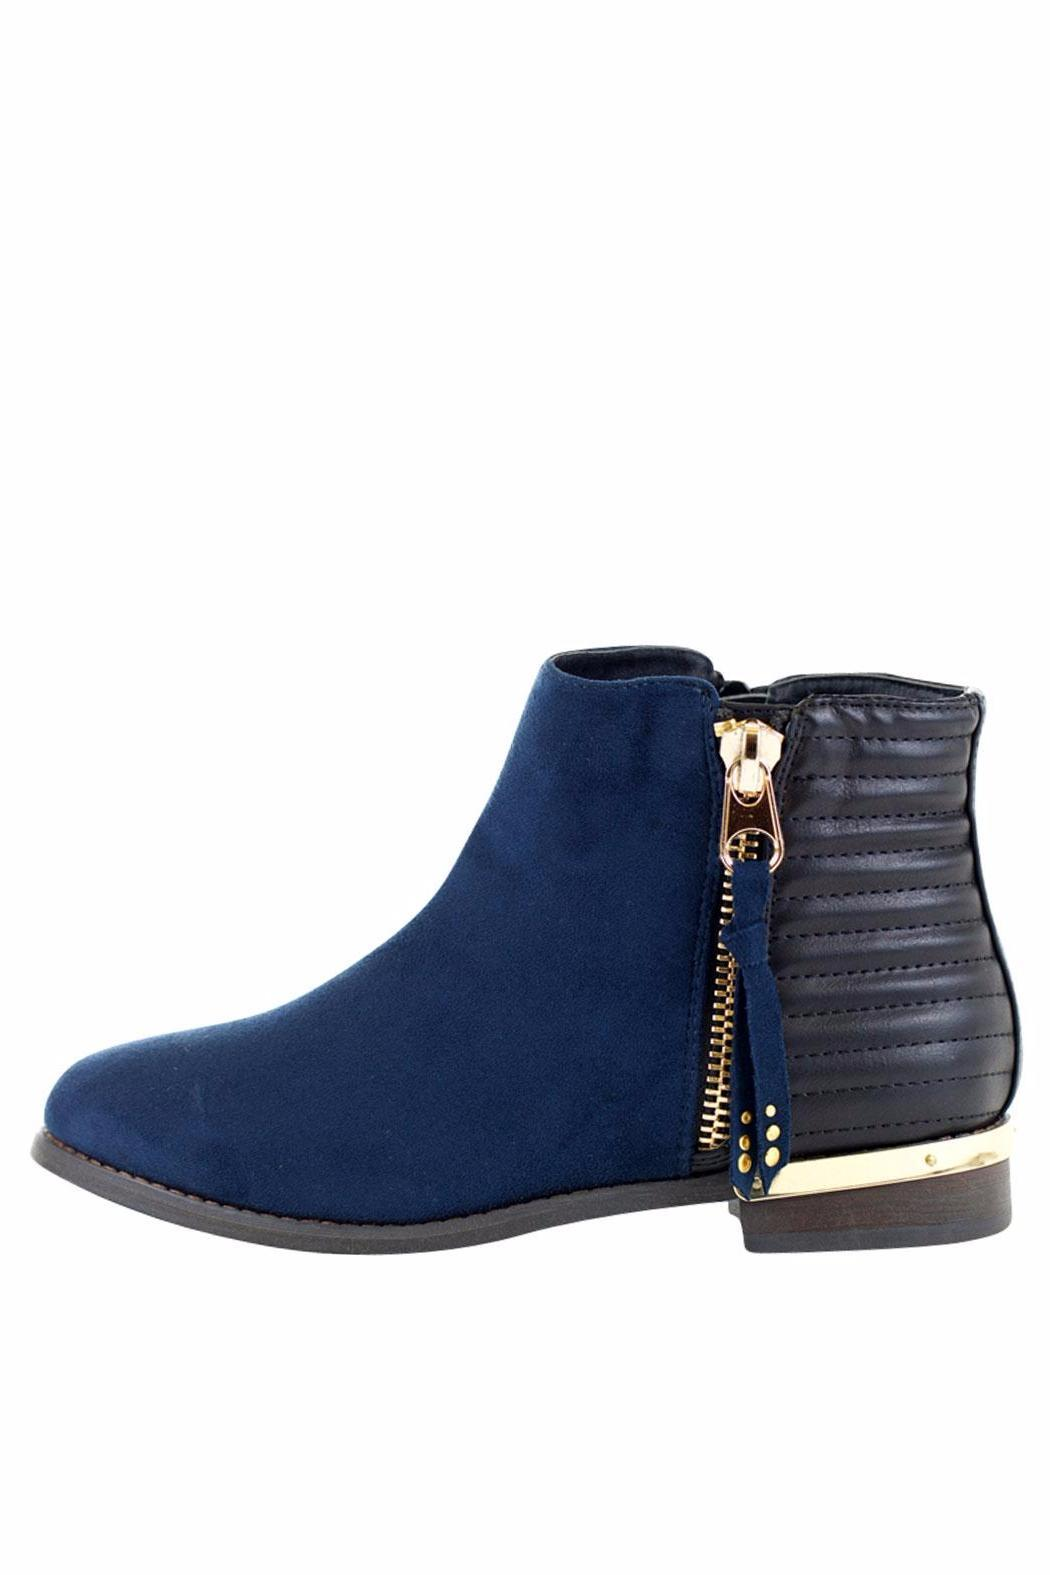 Booties To Wear Over Shoes